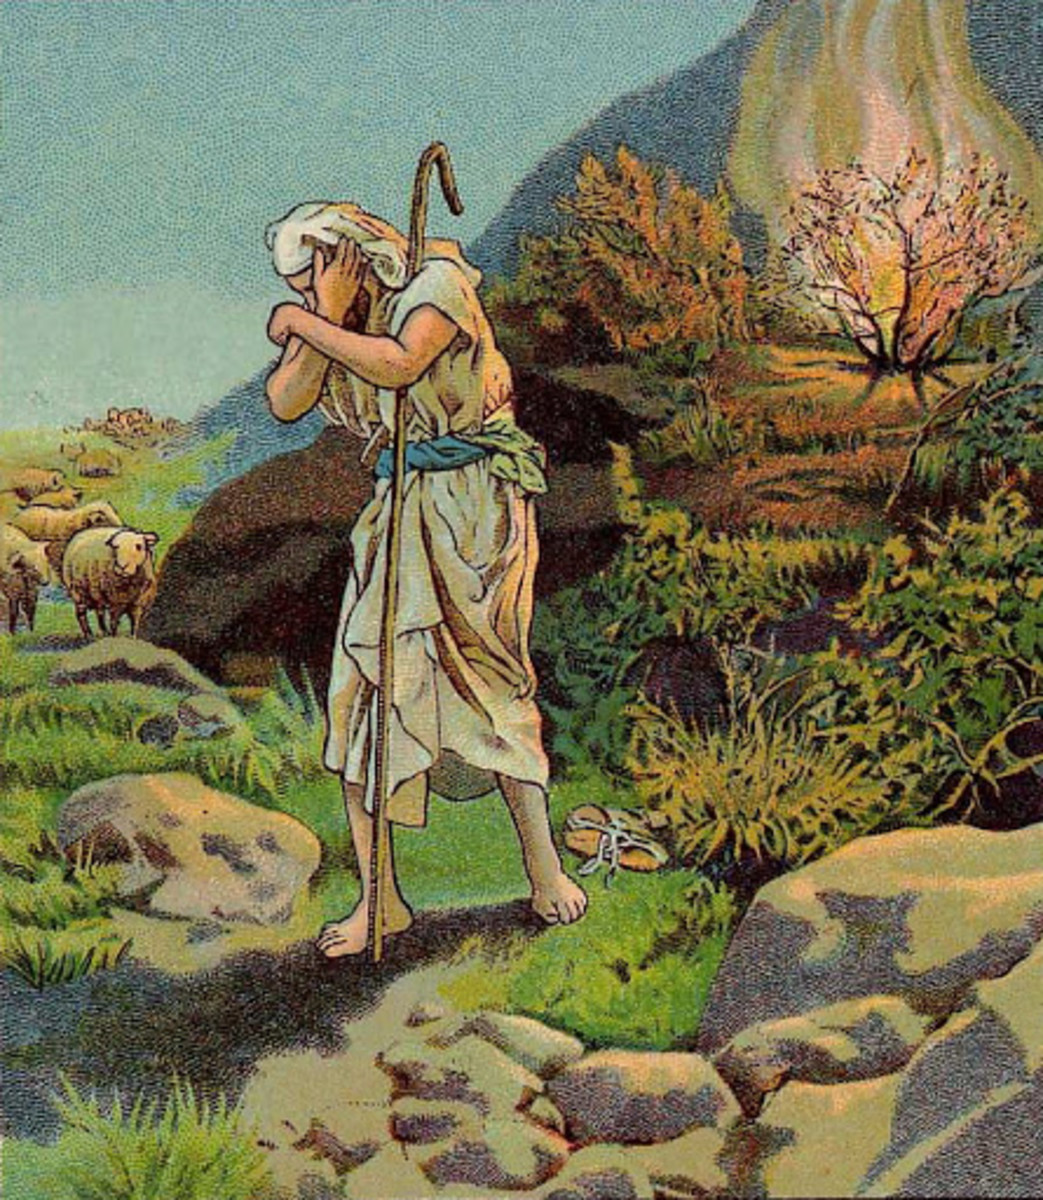 Moses took off his shoes as God commanded.